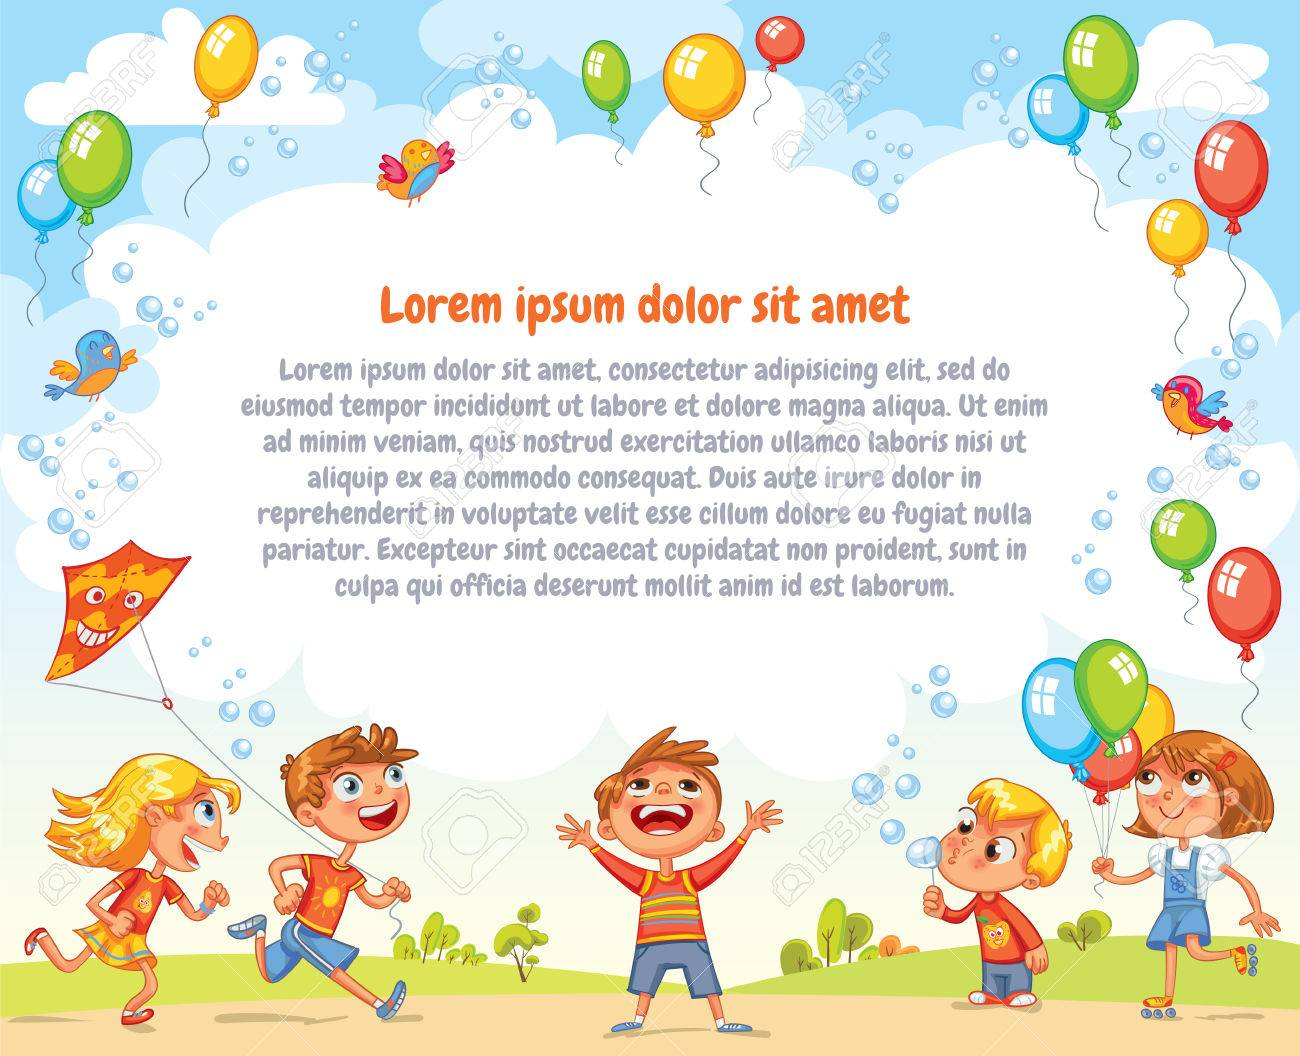 Boys and girls are playing in the Amusement park. Playground. Template for advertising brochure. Ready for your message. Children look up with interest. Funny cartoon character. Vector illustration - 69019222